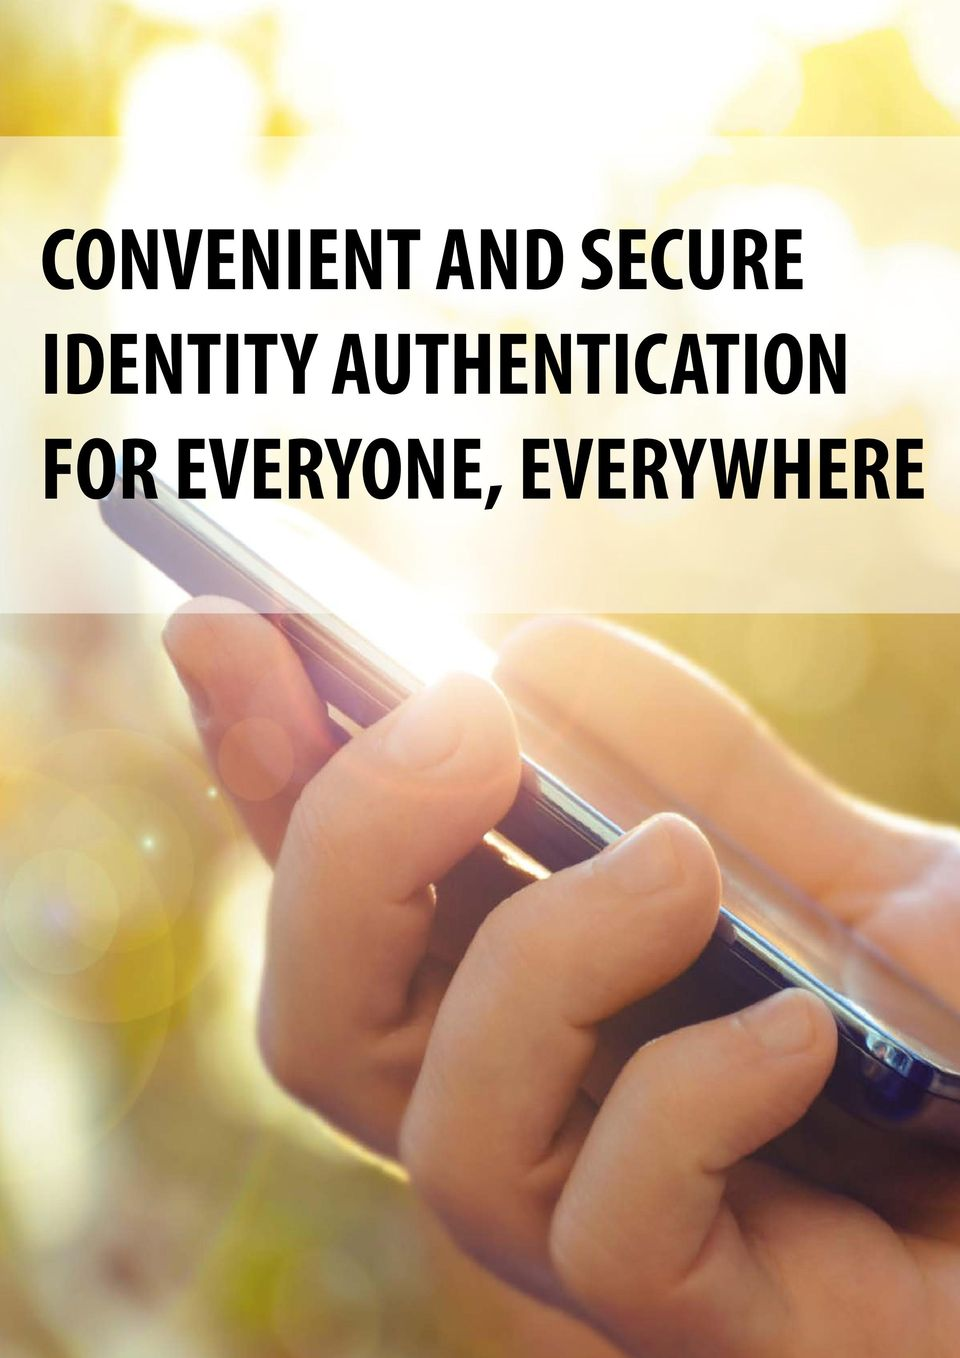 AUTHENTICATION AUTHENTICATION FOR